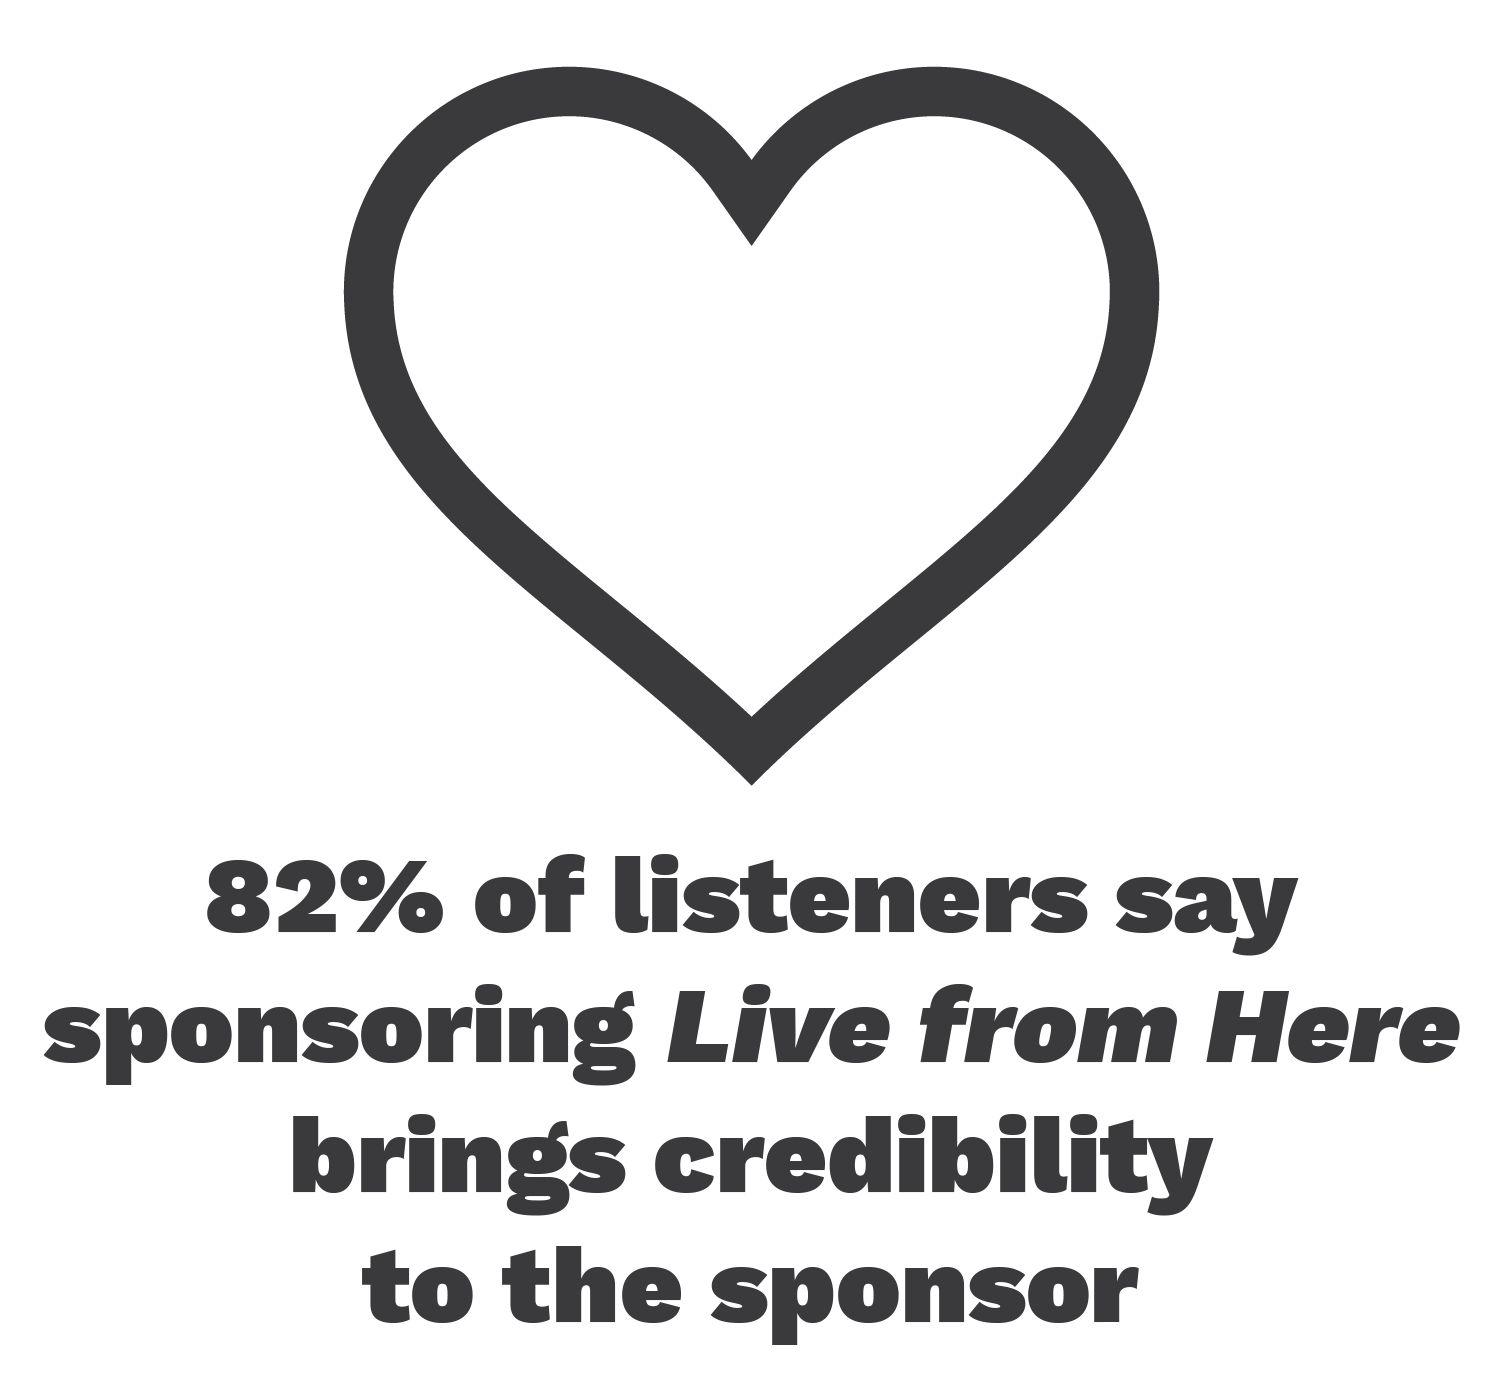 82% of listeners say sponsoring Live from Here brings credibility to the sponsor